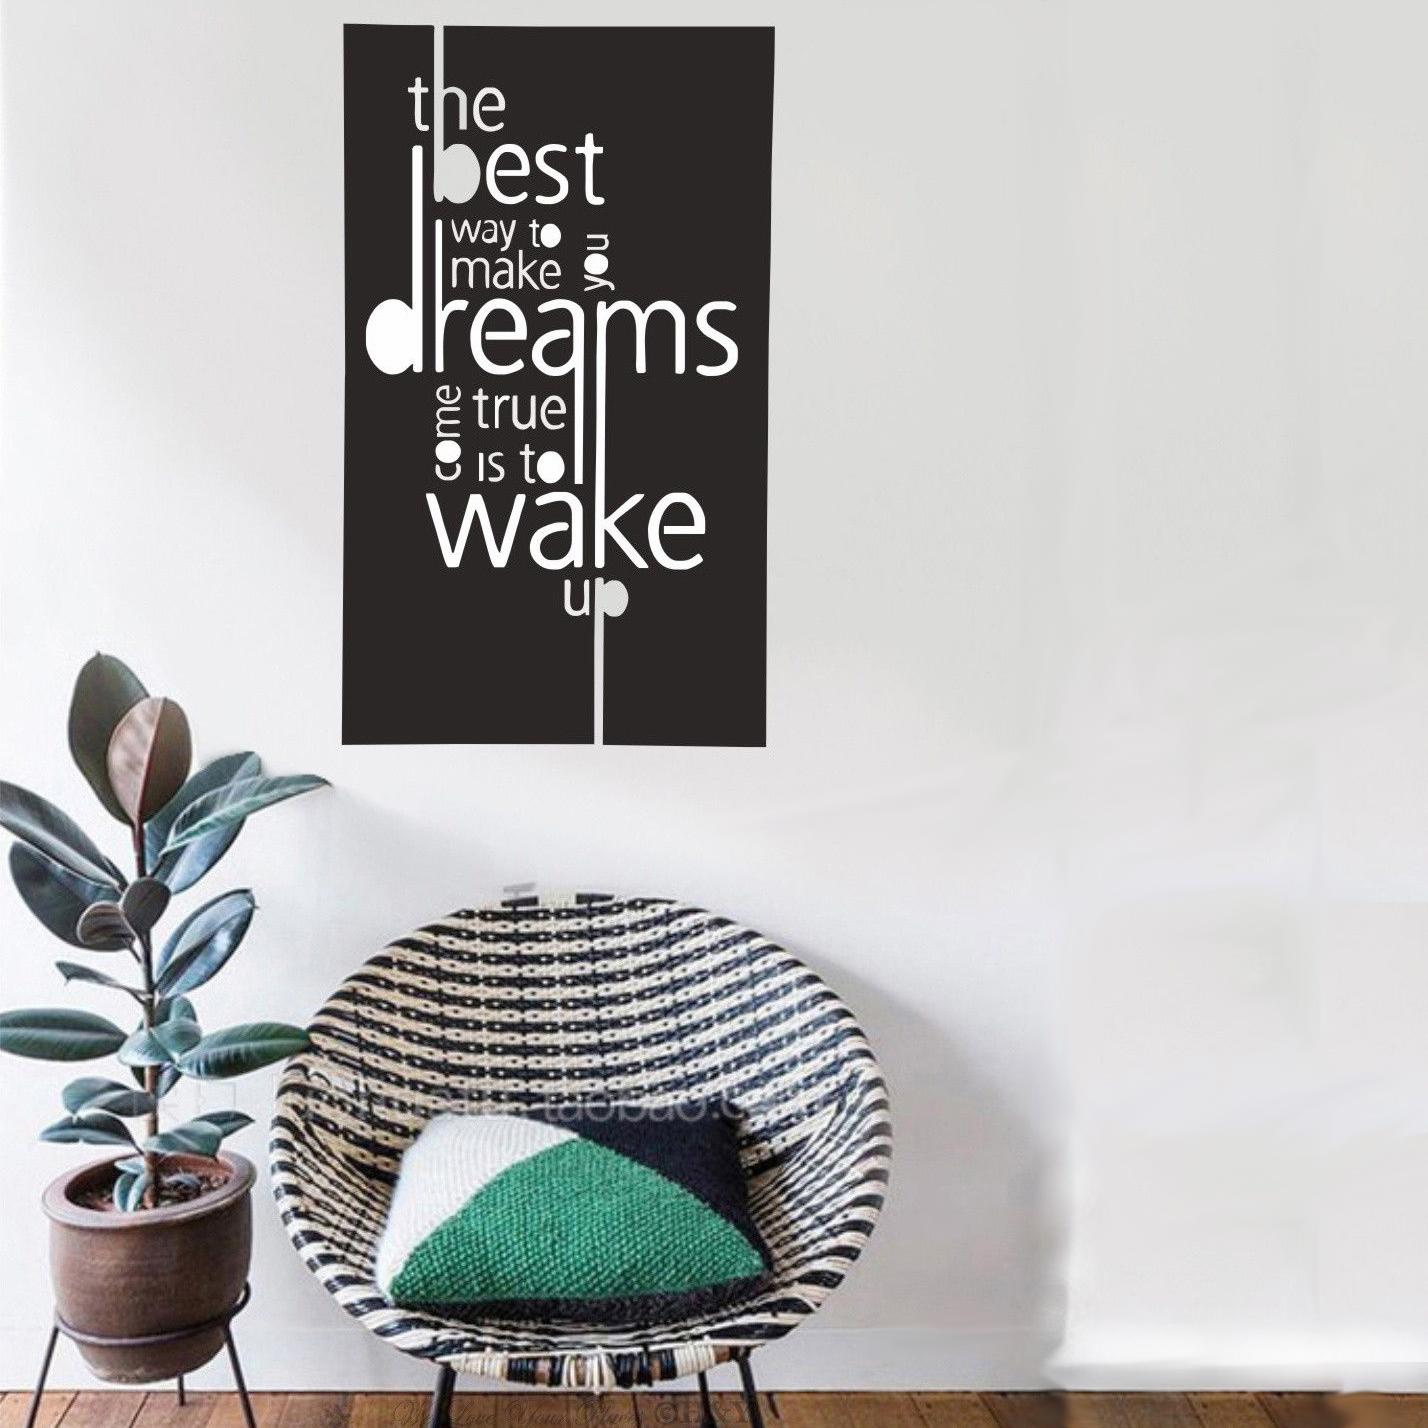 Make Dream Come True Inspirational Quotes Wall Sticker Decal Decor Art Painting Wall Stickers Vinyl Decor Decals